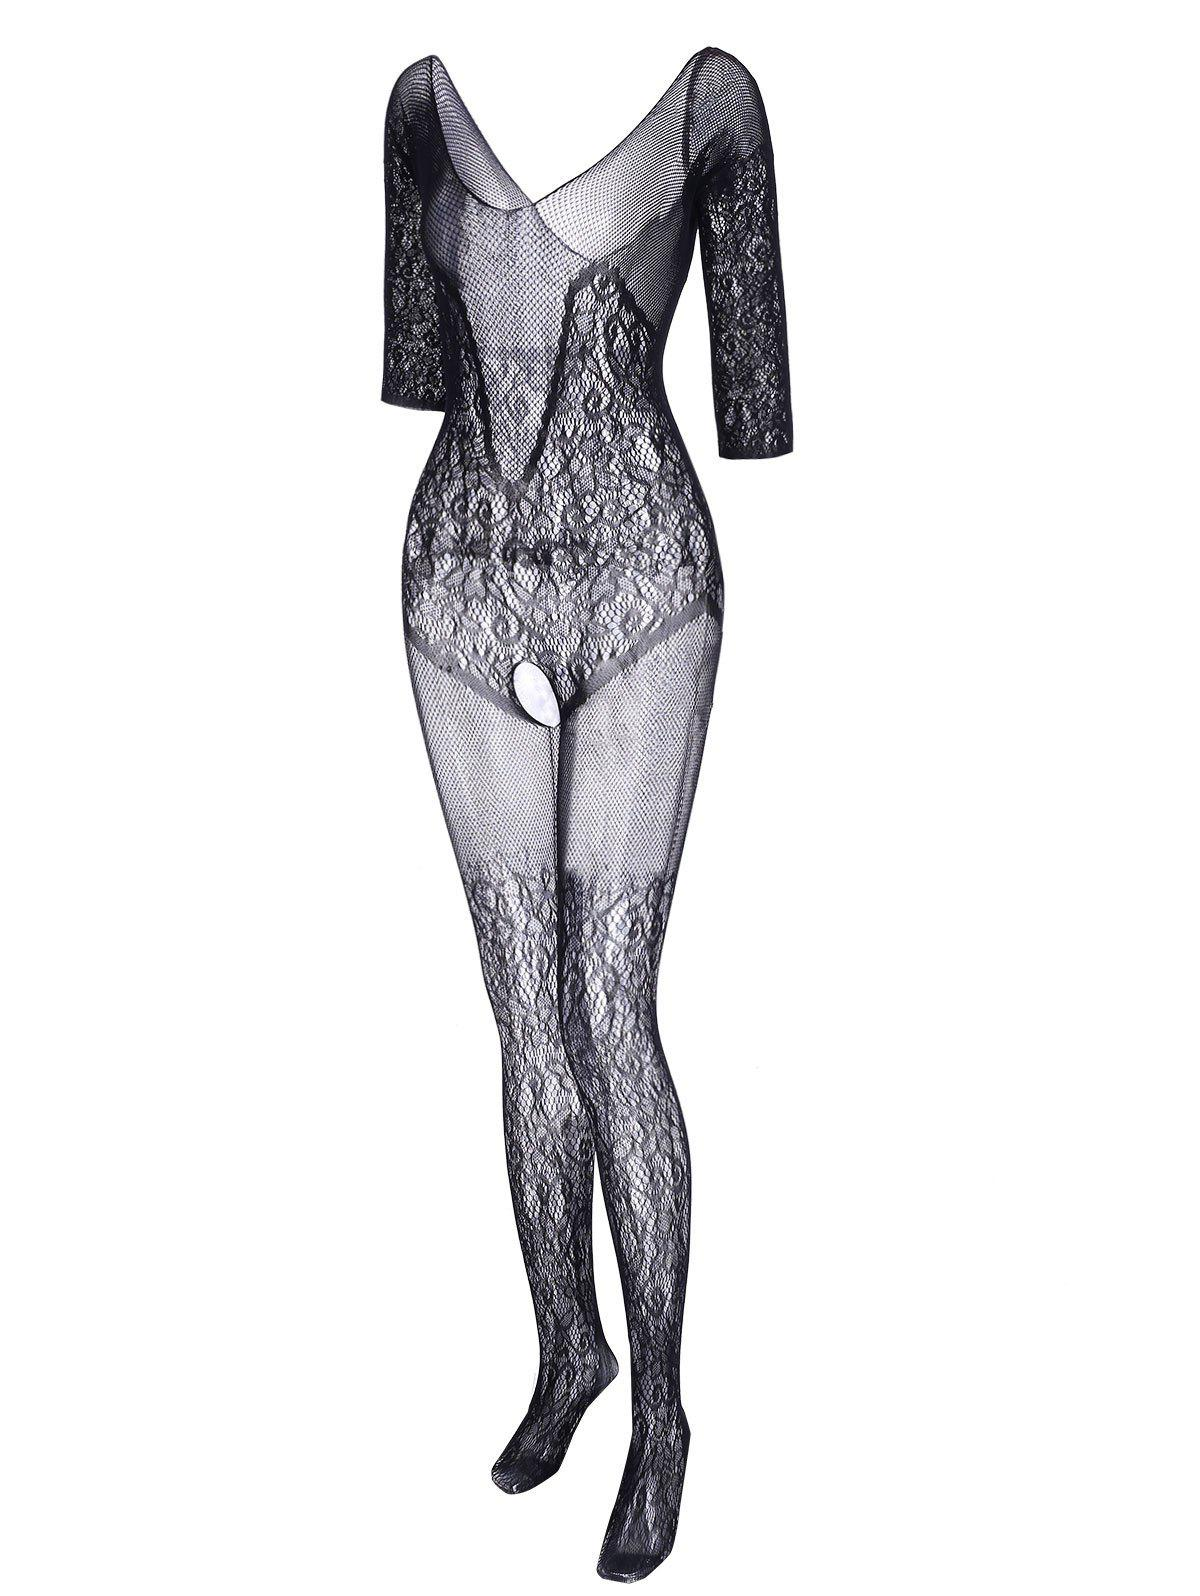 Plus Size See Thru Lace Fishnet Bodystockings - BLACK ONE SIZE